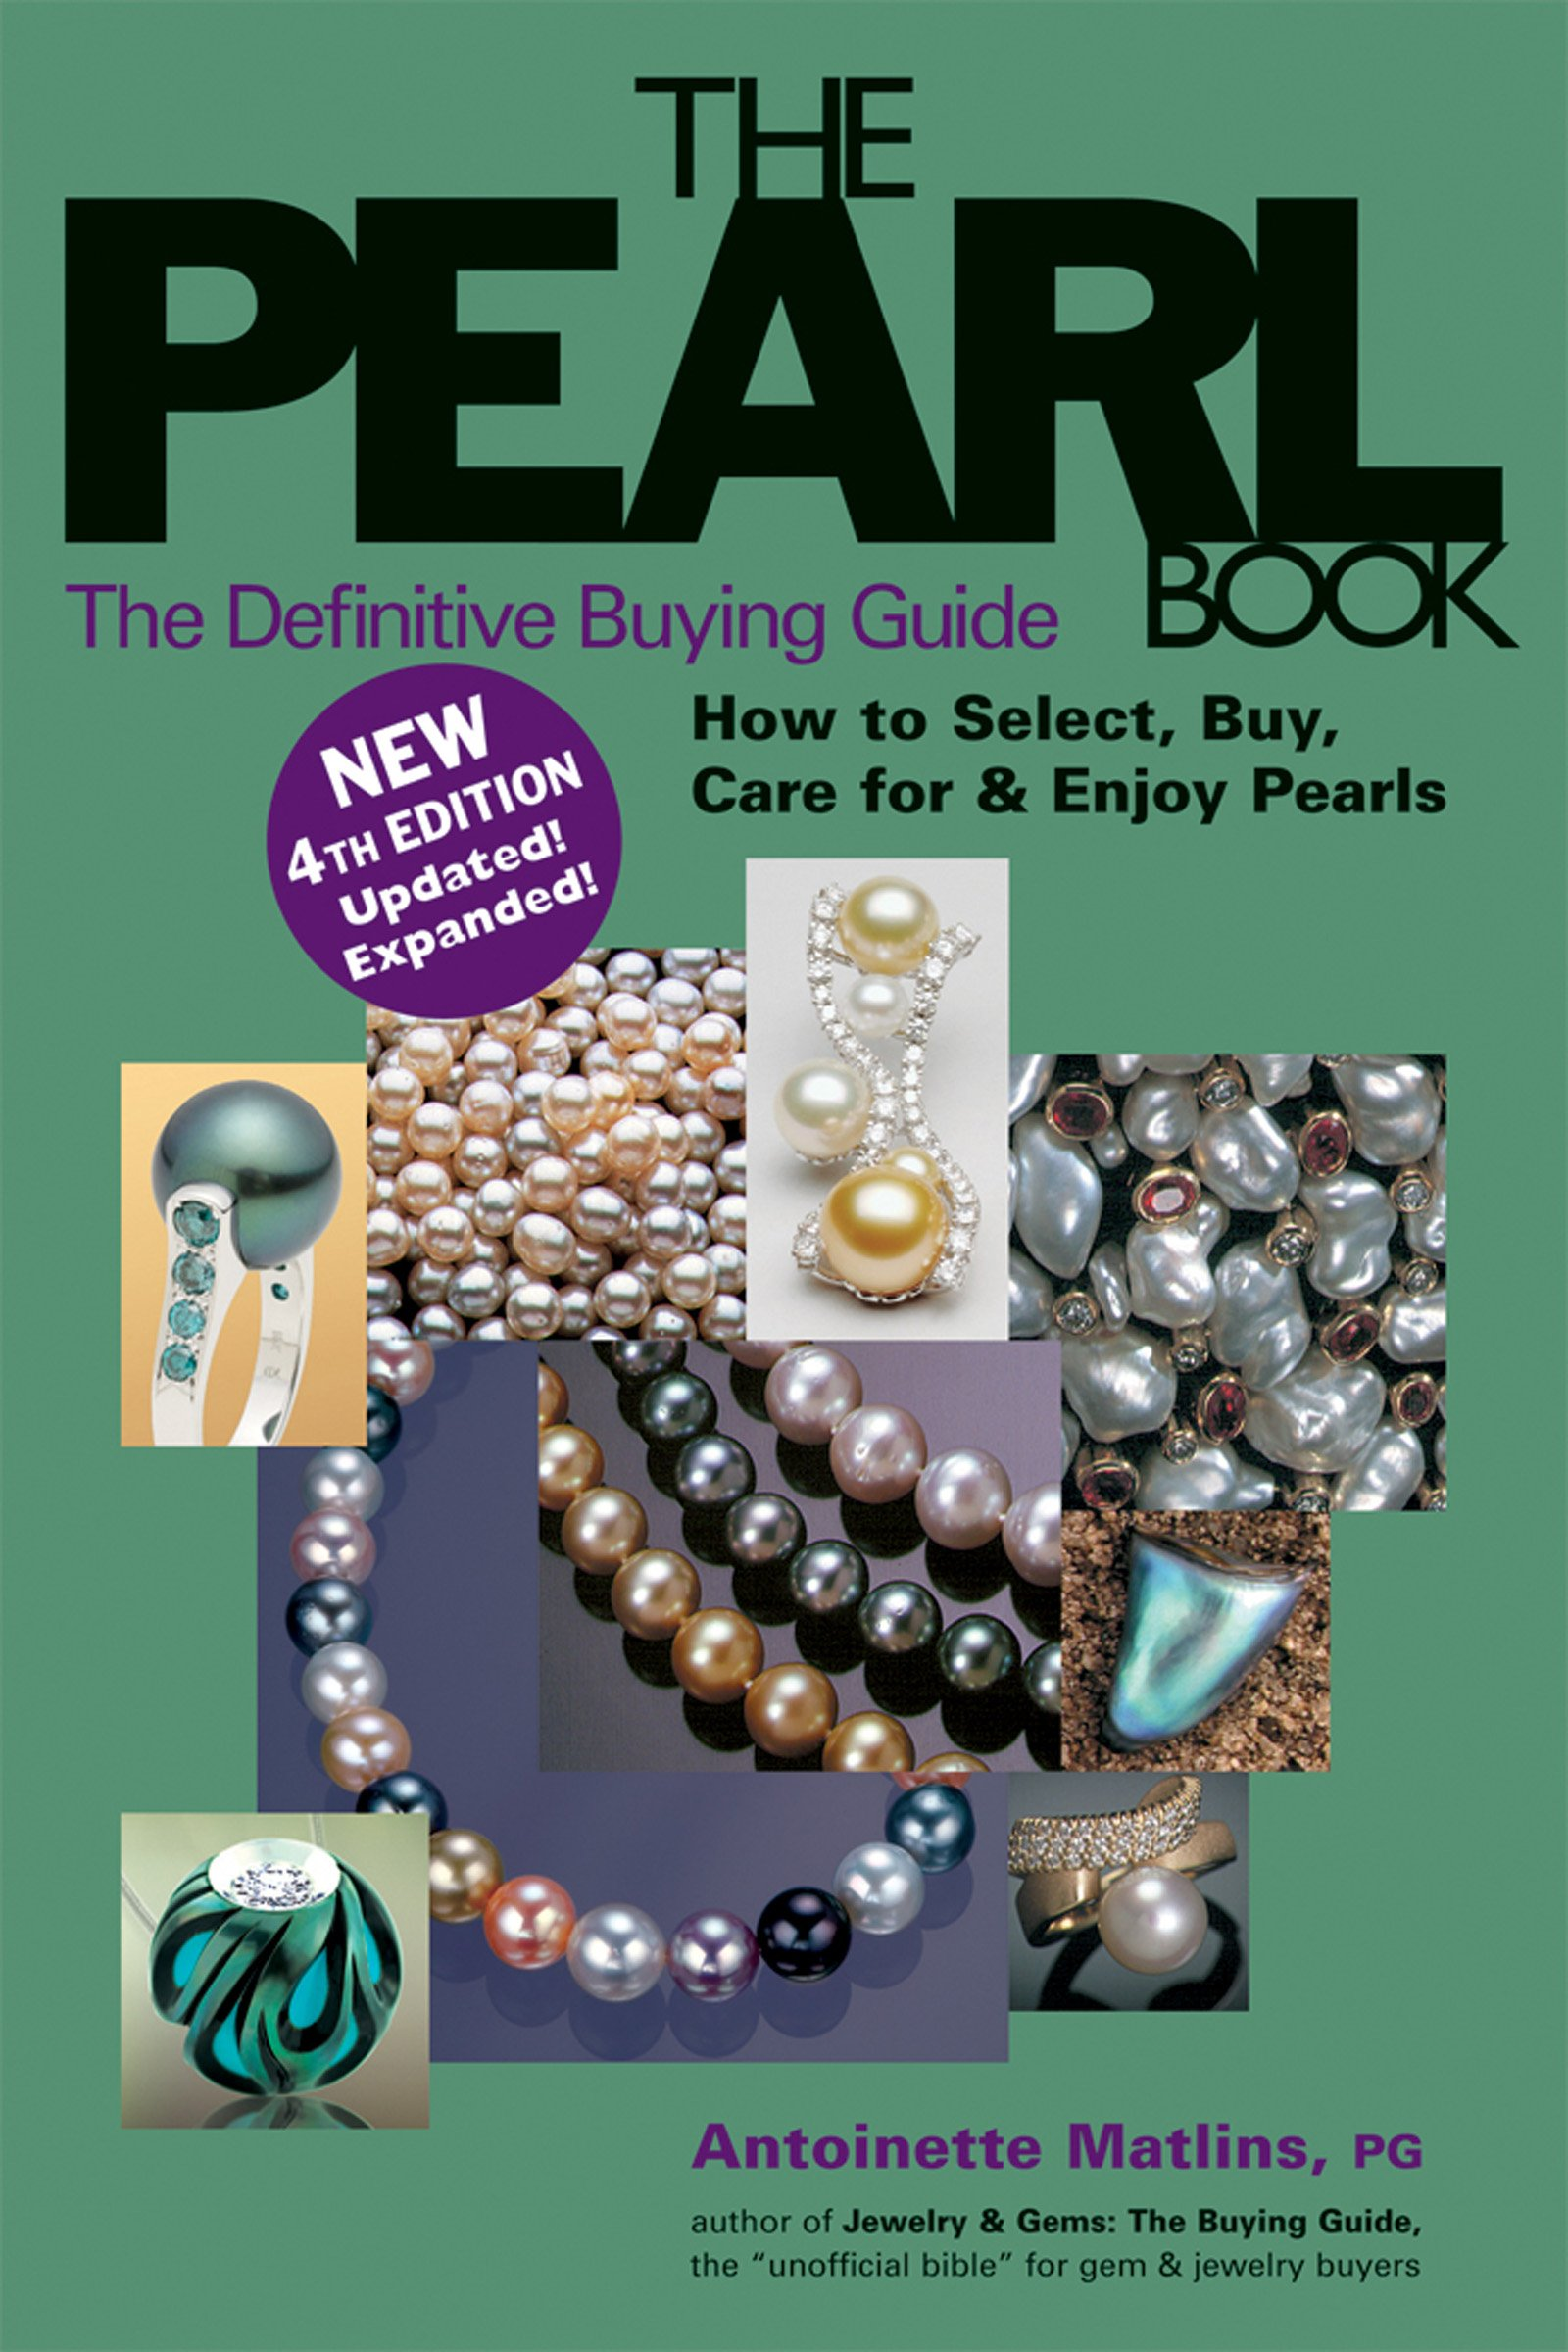 The pearl book the definitive buying guide antoinette matlins 9780943763545 amazon com books